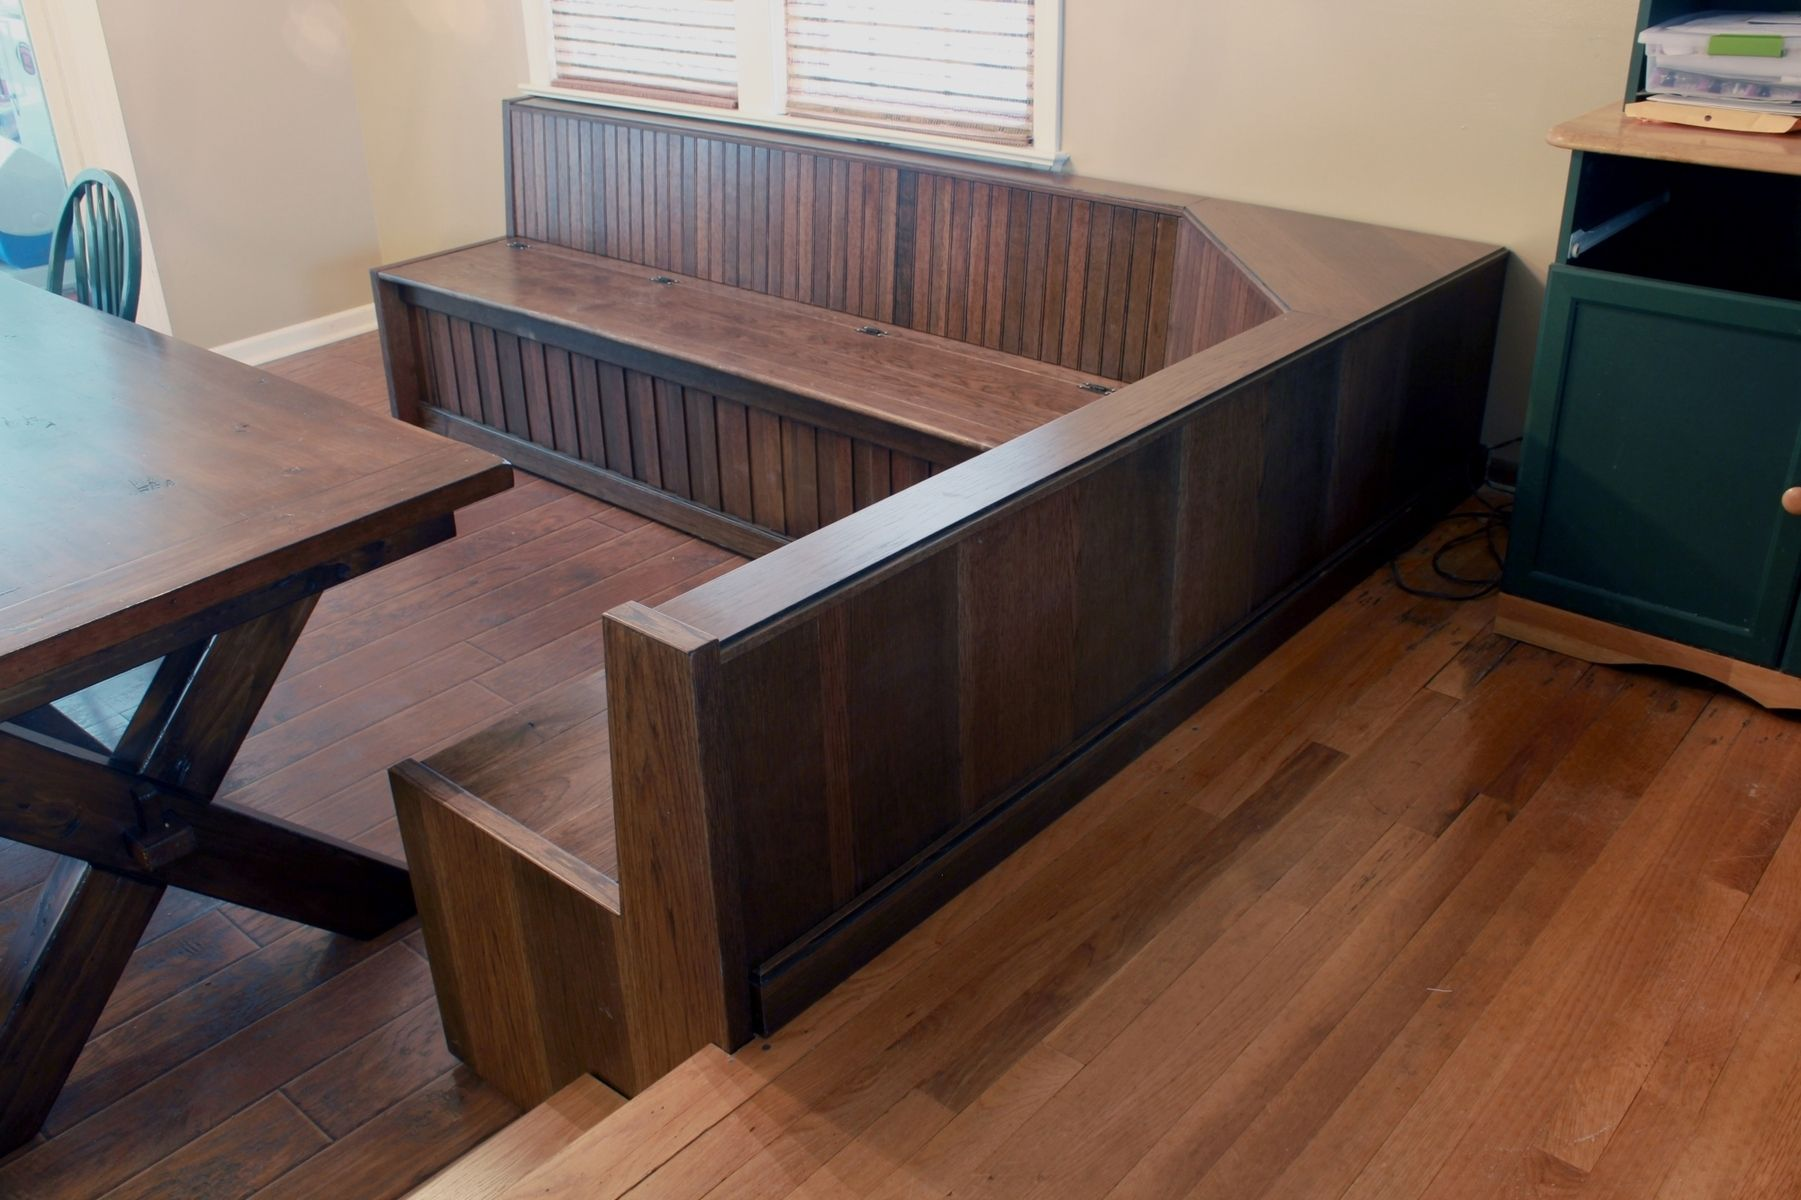 hand crafted custom built in dining room bench seating by r j hoppe inc. Black Bedroom Furniture Sets. Home Design Ideas